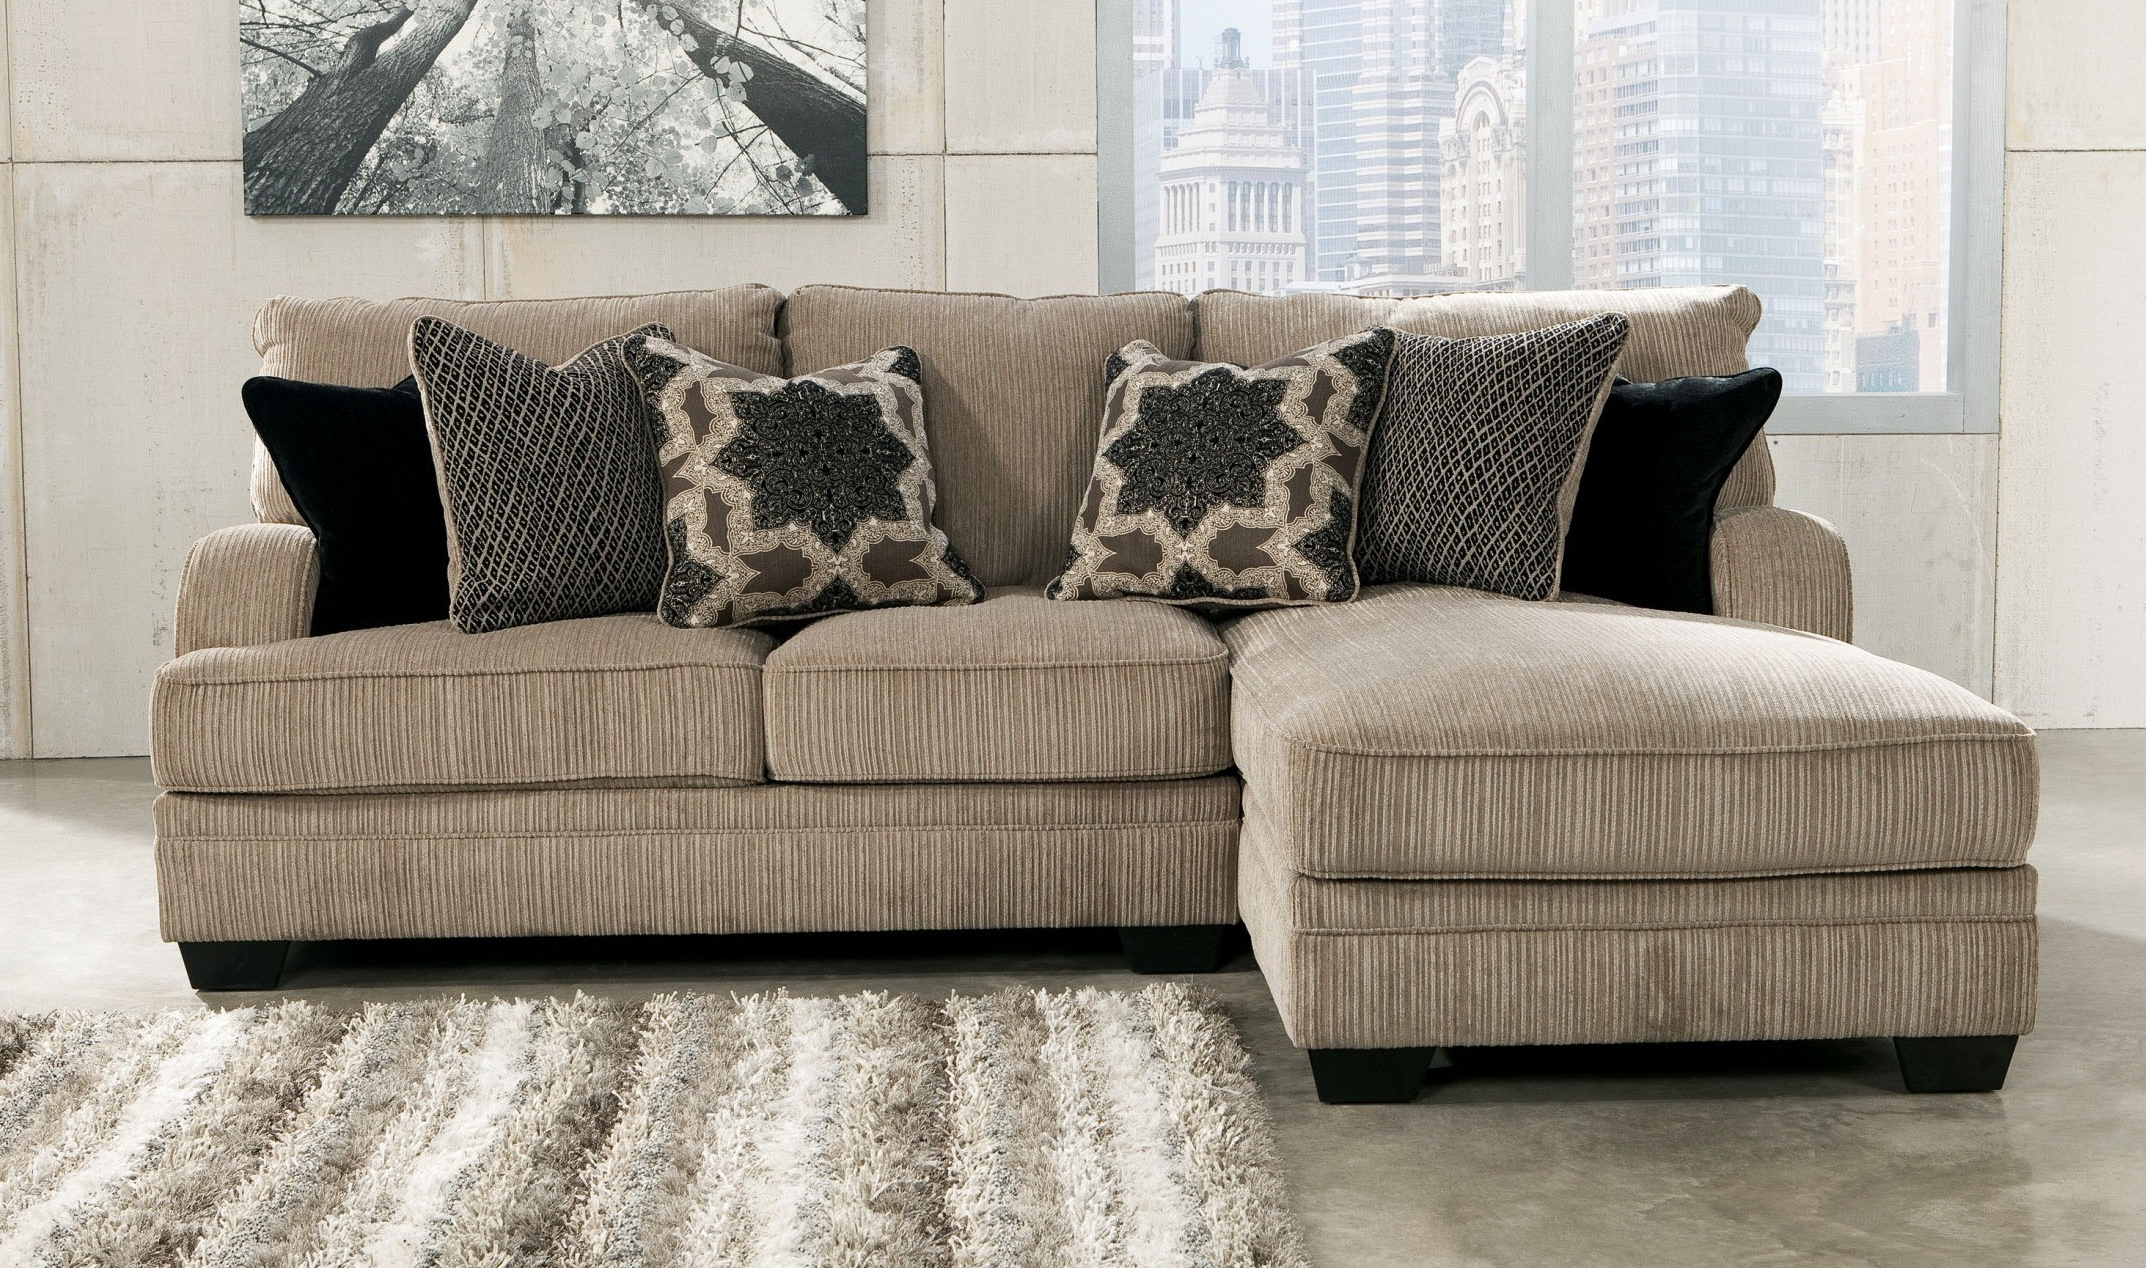 Comfortable Small Sectionals Black Reclining Sectionals Small With Most Current Mini Sectional Sofas (View 1 of 20)